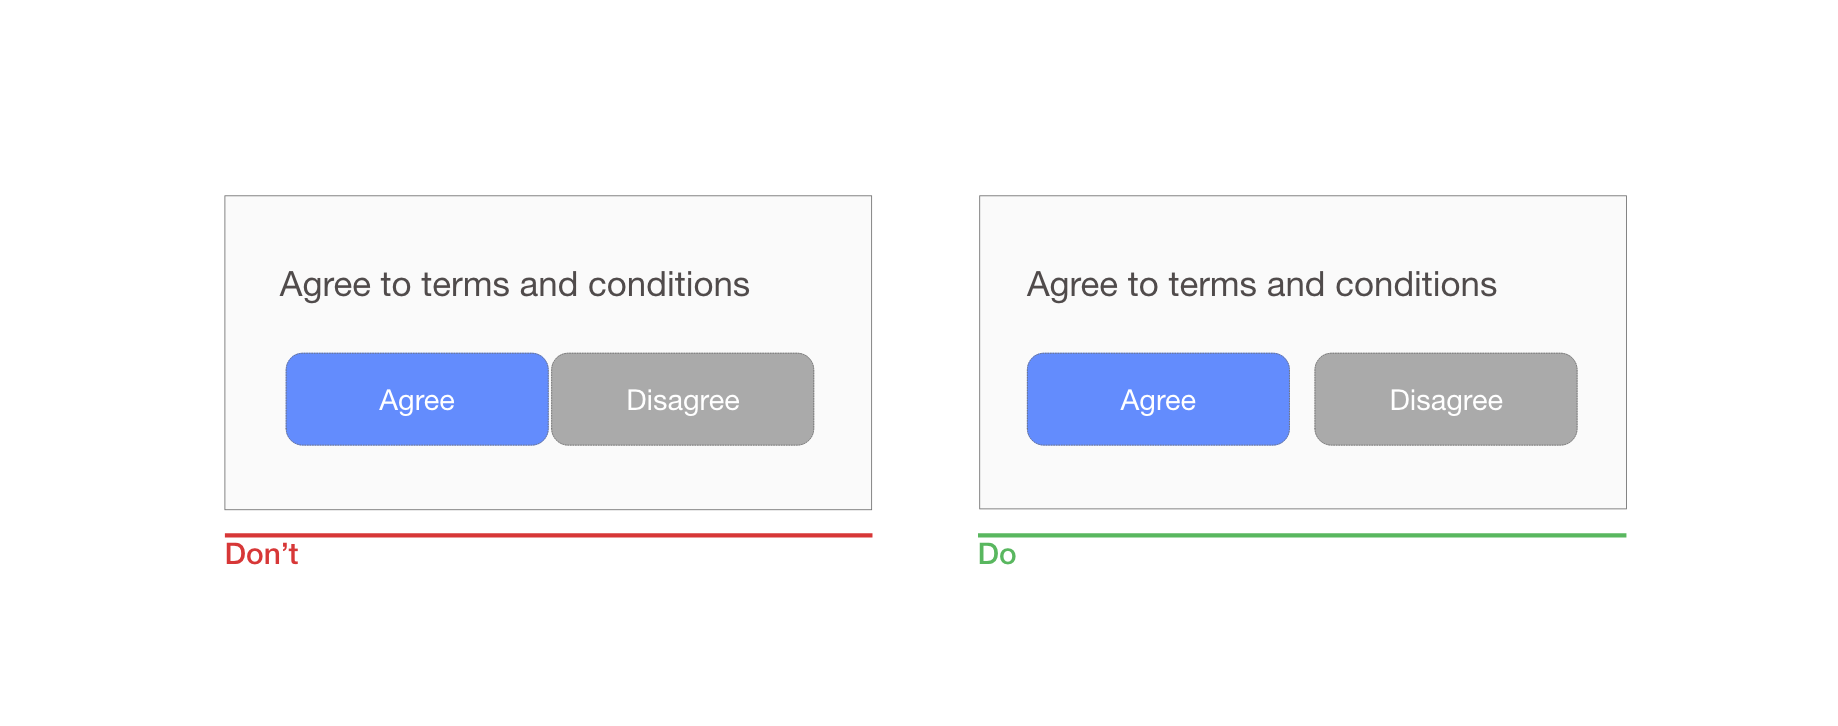 Best Practices For Mobile Form Design Smashing Magazine